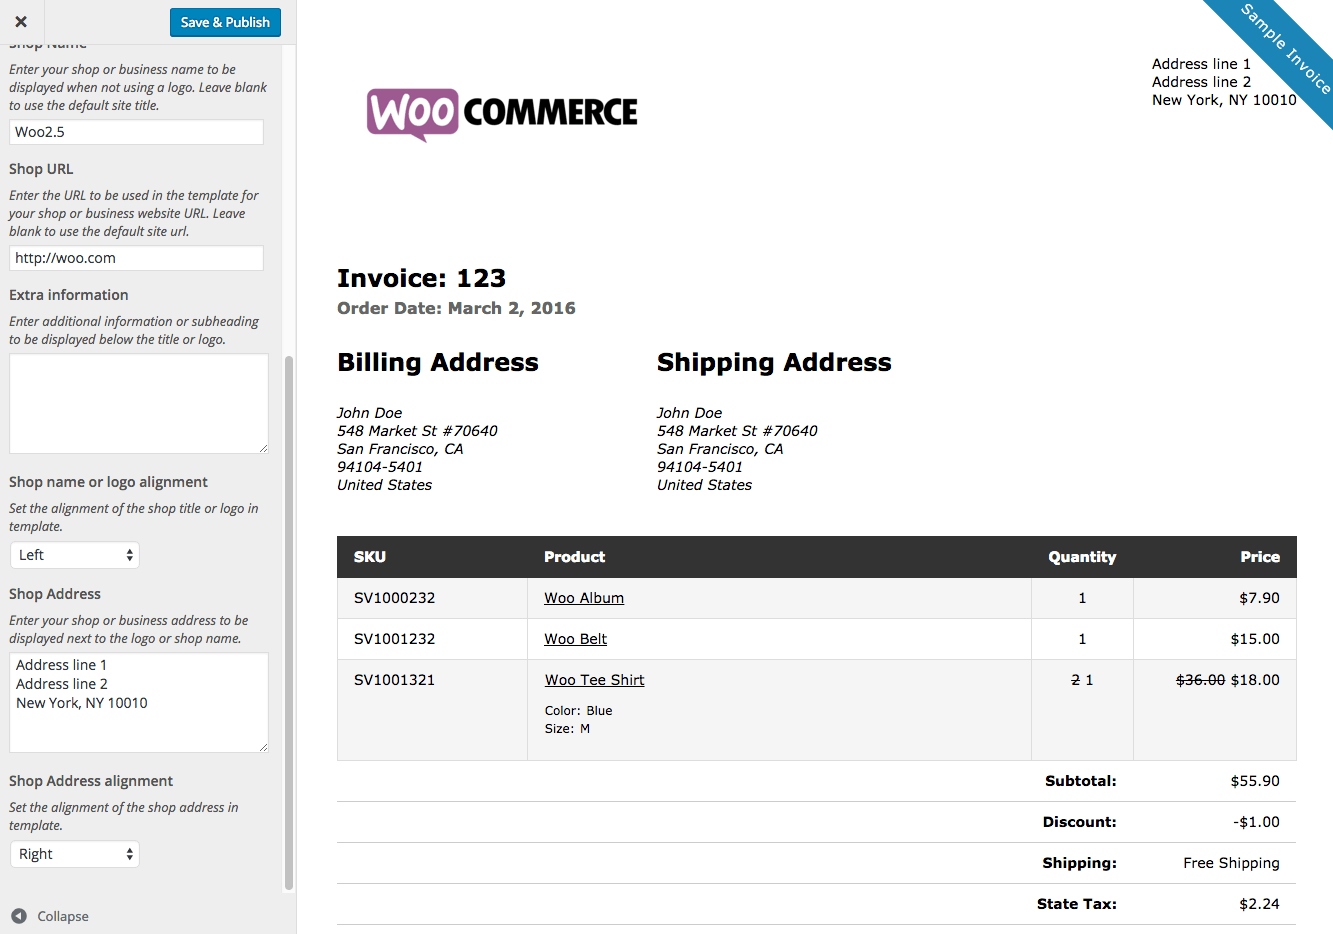 Modaoxus  Marvellous Woocommerce Print Invoices Amp Packing Lists  Woocommerce Docs With Heavenly Woocommerce Print Invoices  Packing Lists Customizer With Divine Best Invoice Software Also Invoice Design In Addition Invoiced Lite And Google Docs Invoice As Well As Aynax Com Free Printable Invoice Additionally Invoice Me From Docswoocommercecom With Modaoxus  Heavenly Woocommerce Print Invoices Amp Packing Lists  Woocommerce Docs With Divine Woocommerce Print Invoices  Packing Lists Customizer And Marvellous Best Invoice Software Also Invoice Design In Addition Invoiced Lite From Docswoocommercecom